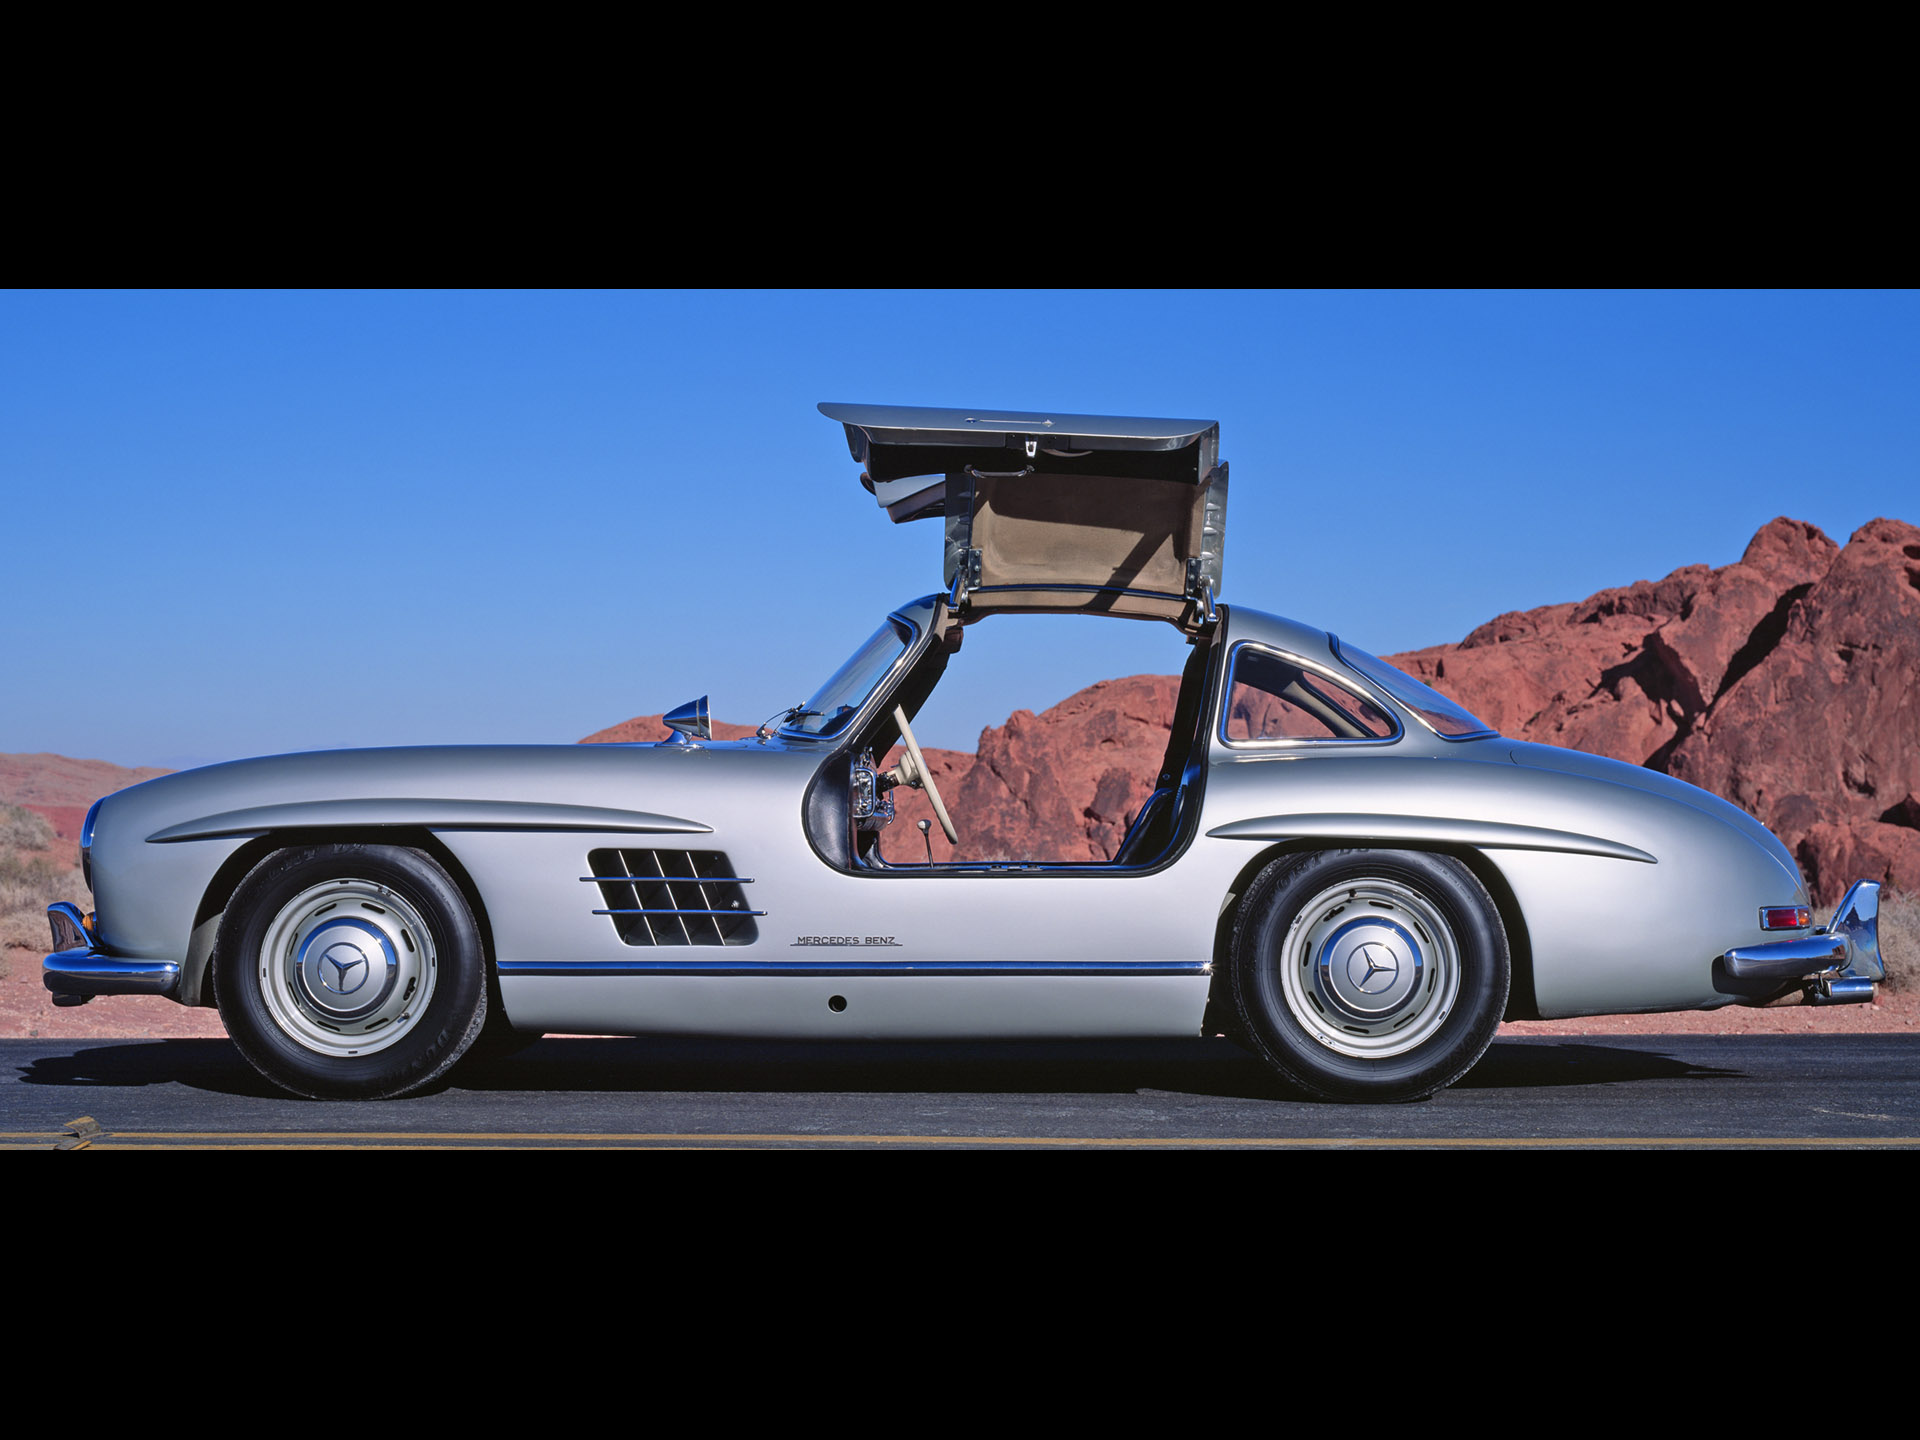 Mercedes-Benz 300Sl 10 Free Car Wallpaper